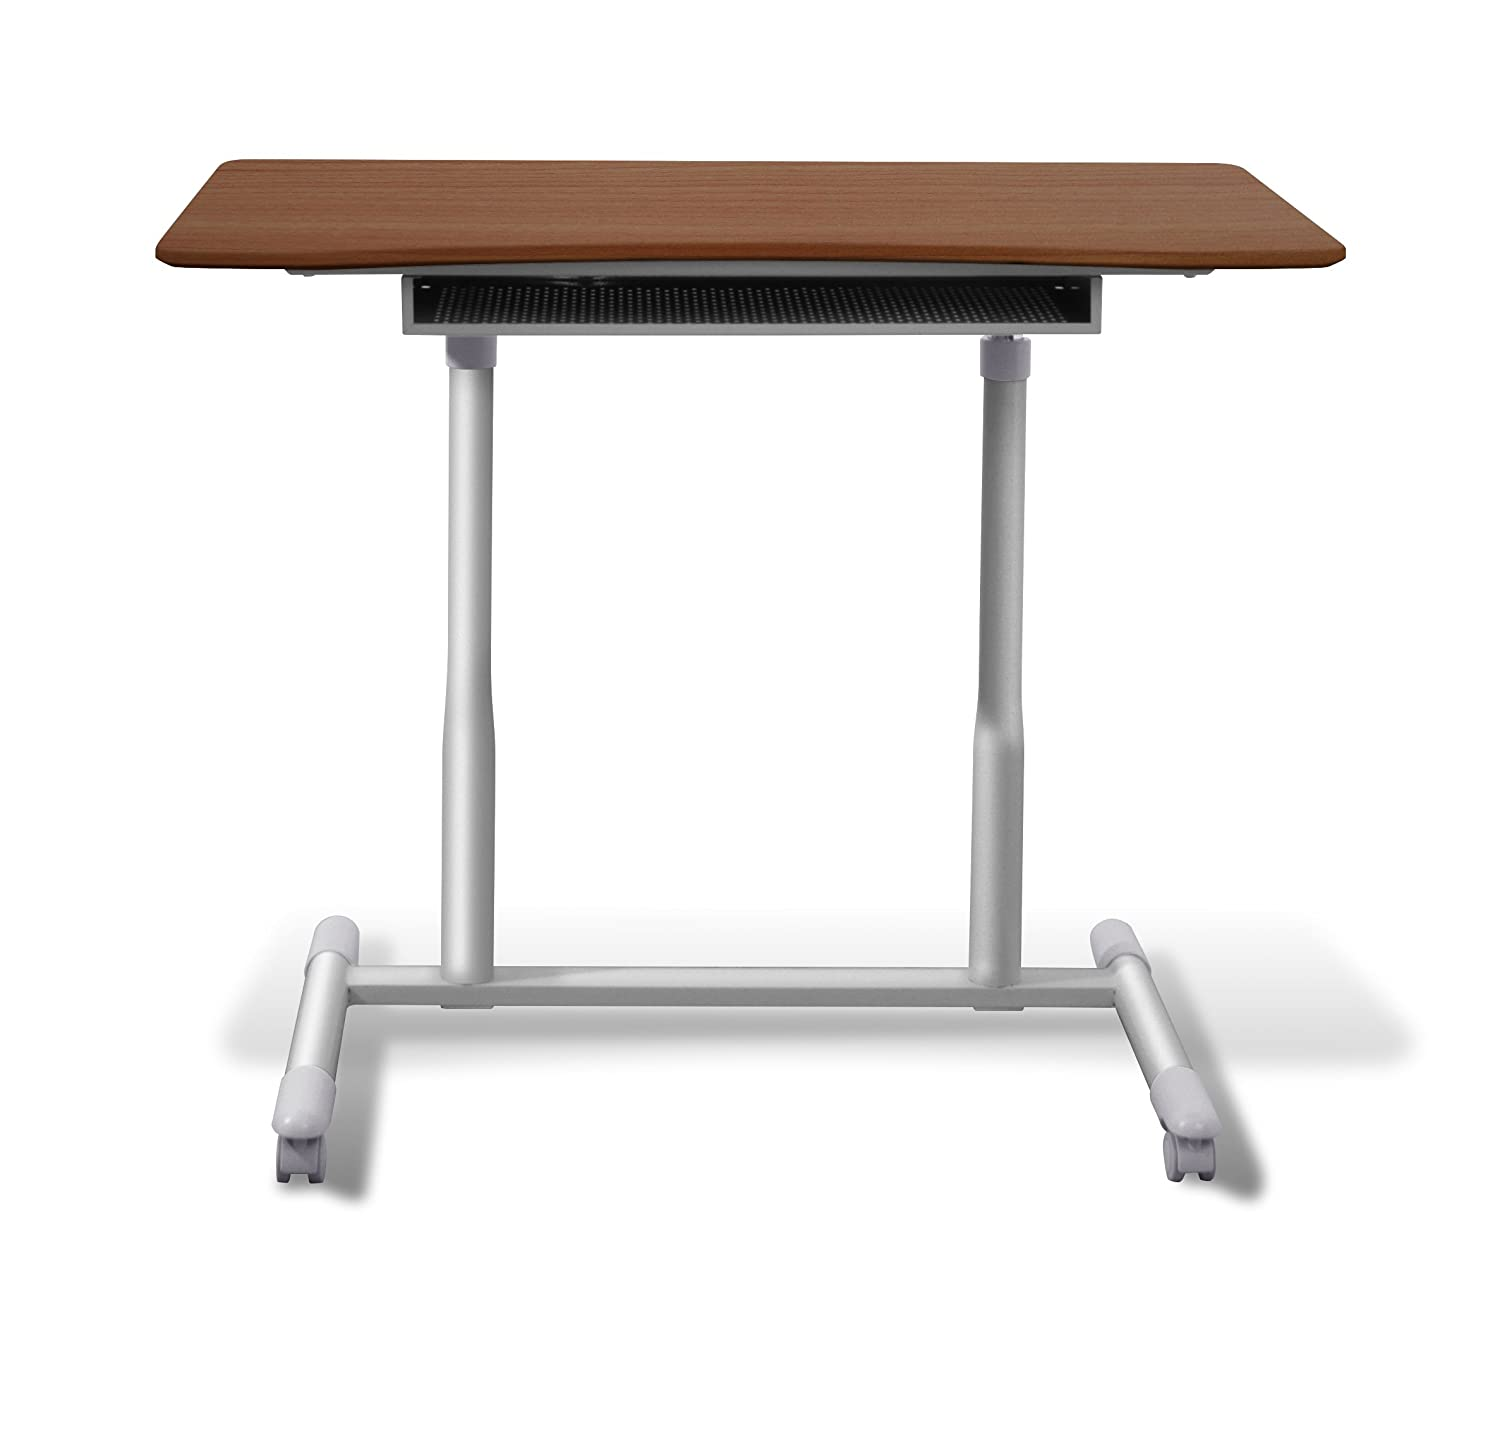 also computer workstation varnished ideas adjustable wheels ladder stand height wooden standing desk with rustic caster desktop mobile ergonomic